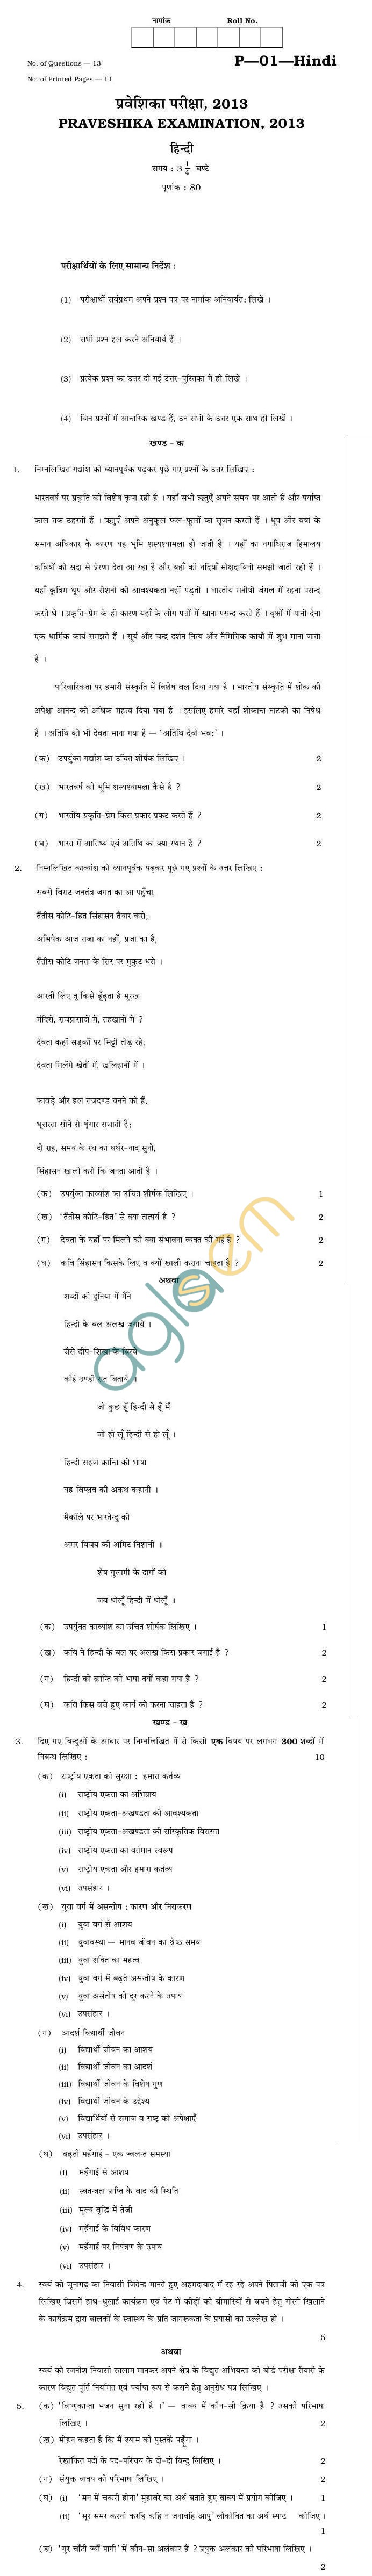 Rajasthan Board Praveshika Hindi Question Paper 2013